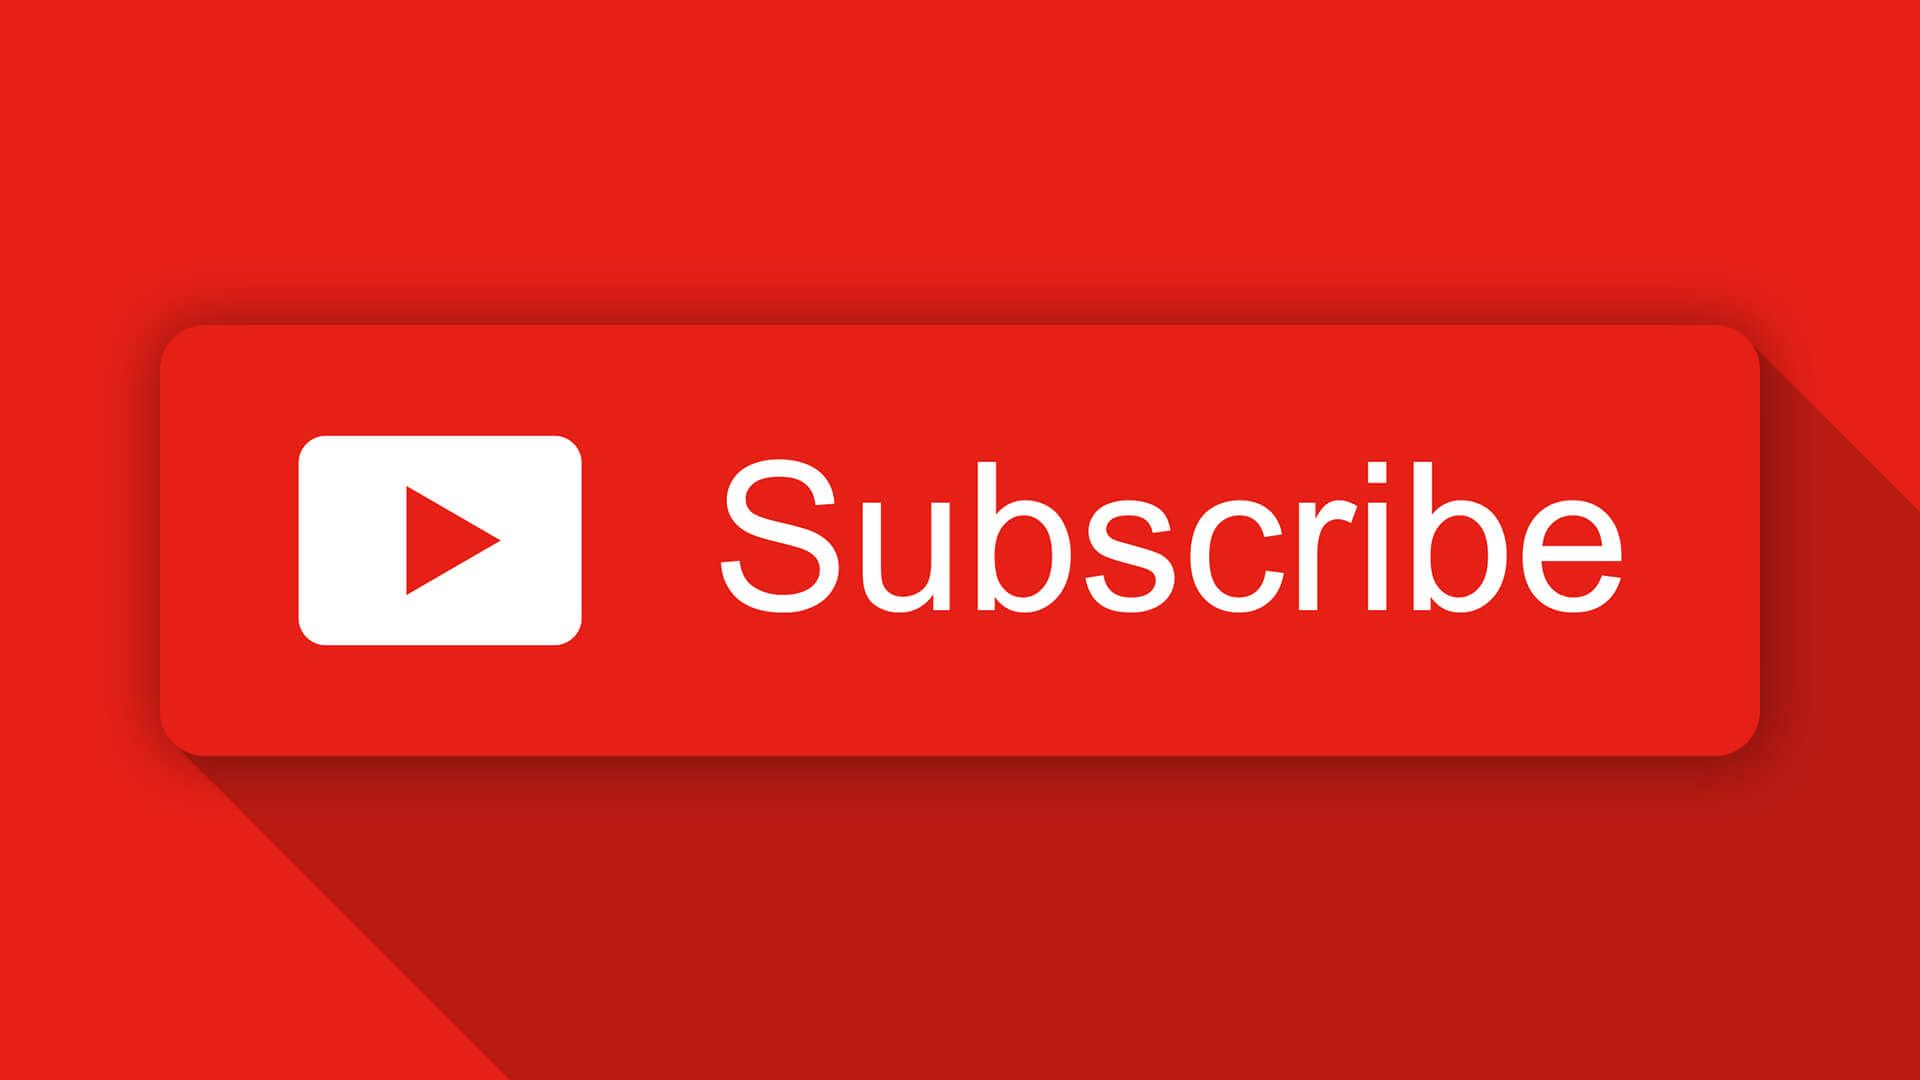 How to get YouTube subscribers effortlessly?